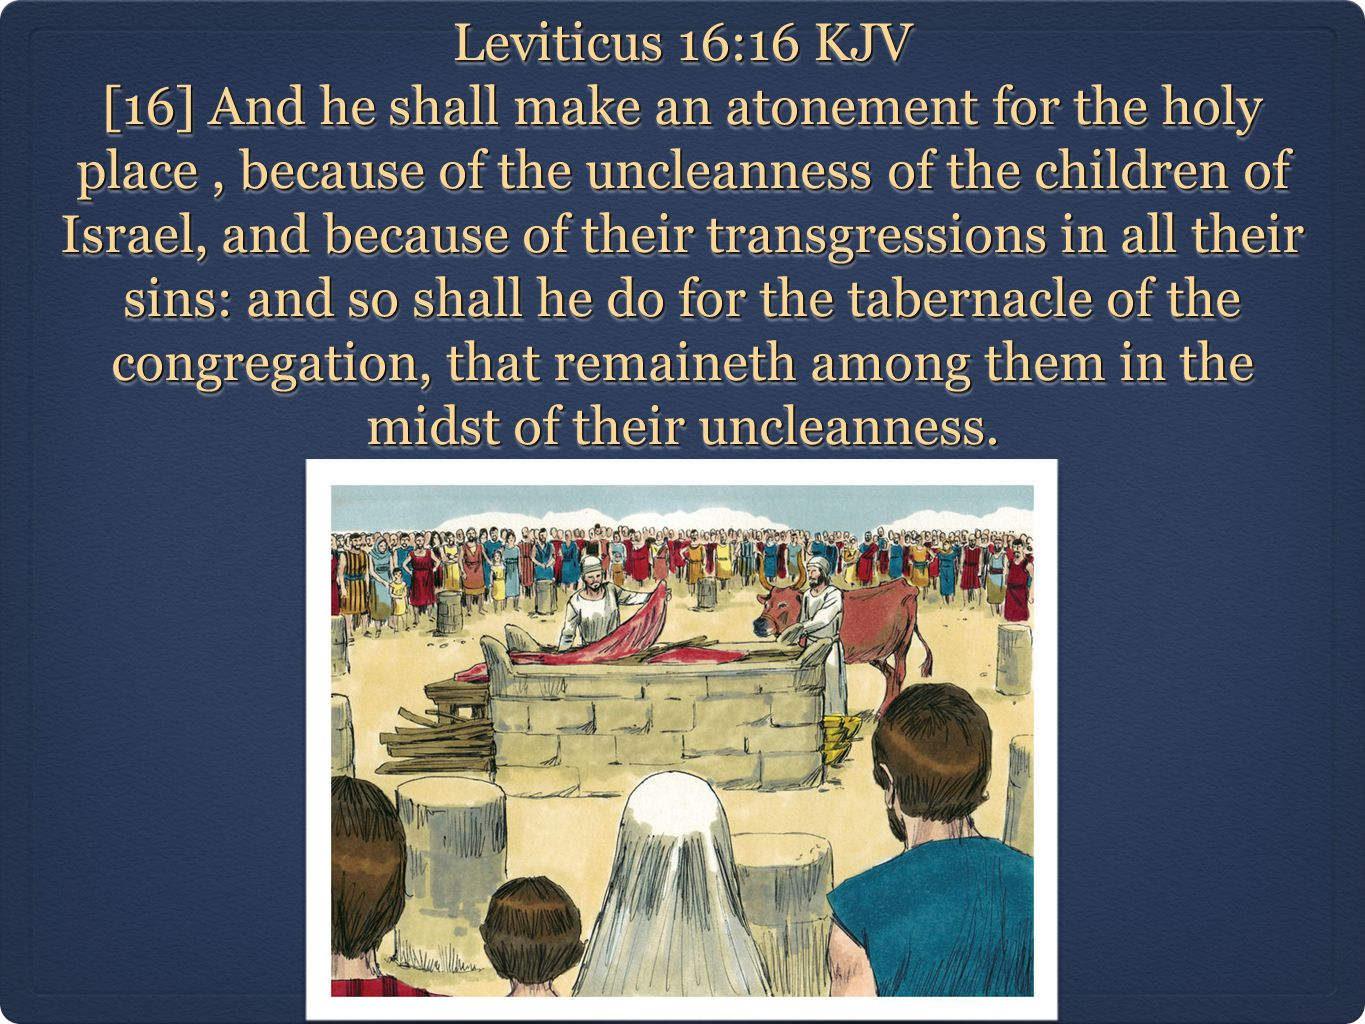 Leviticus 16:16 KJV [16] And he shall make an atonement for the holy place, because of the uncleanness of the children of Israel, and because of their transgressions in all their sins: and so shall he do for the tabernacle of the congregation, that remaineth among them in the midst of their uncleanness.